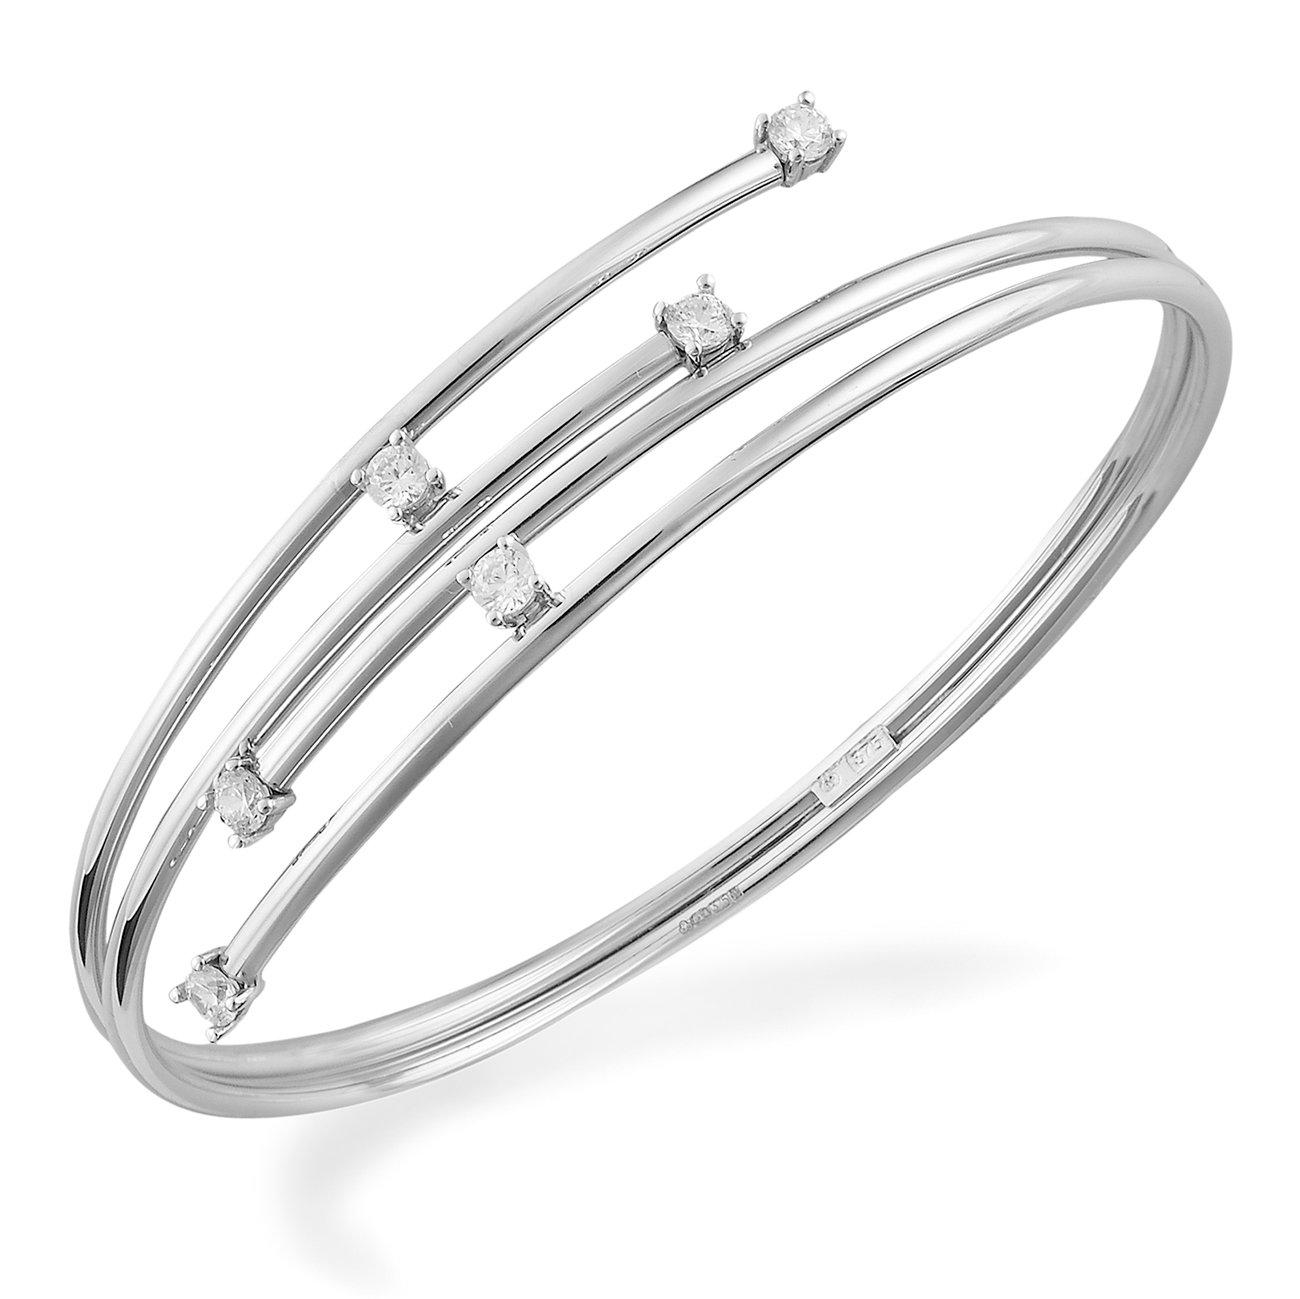 9ct White Gold Cubic Zirconia Bangle